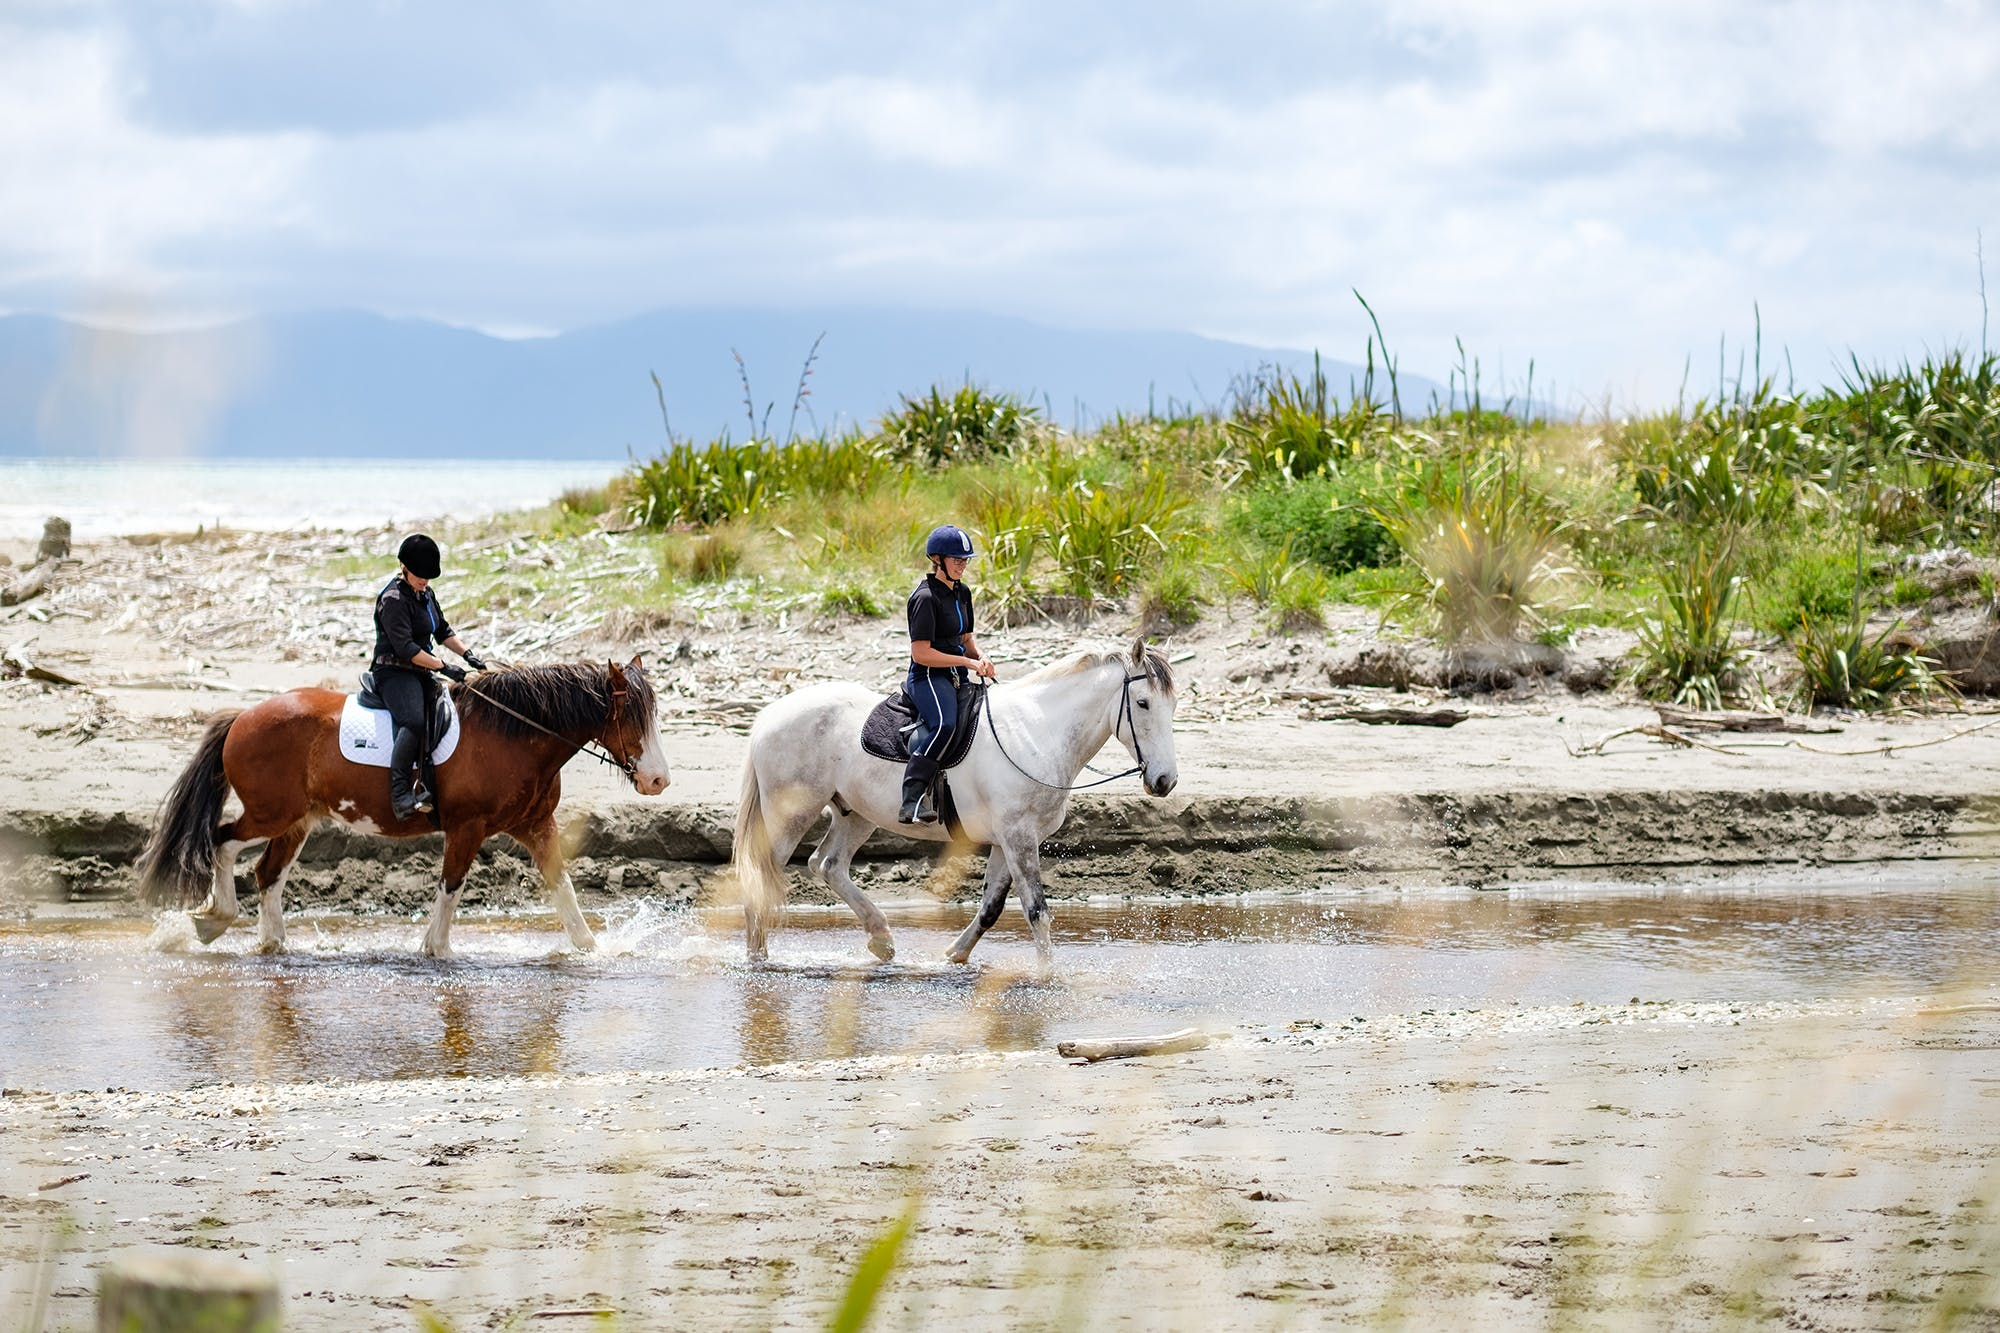 Kapiti Stables horse riding guided tours in Queen Elizabeth Park